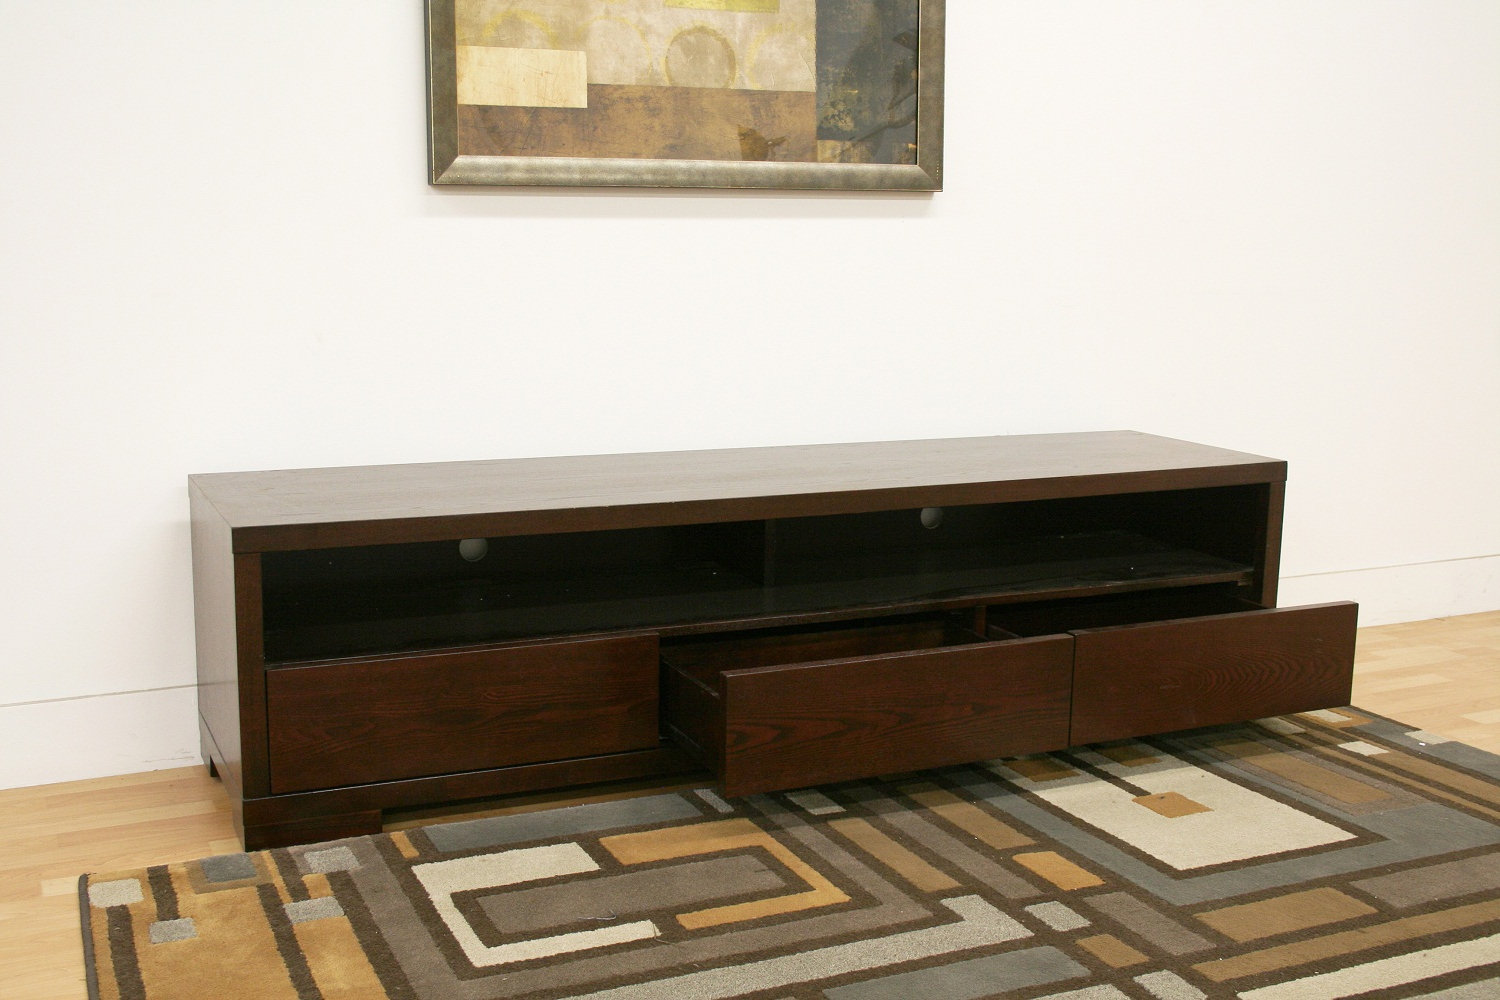 Modern Low Profile Tv Stands In Latest Low Profile Walnut Tv Media Stand With Glass Shelf Philadelphia (View 8 of 20)